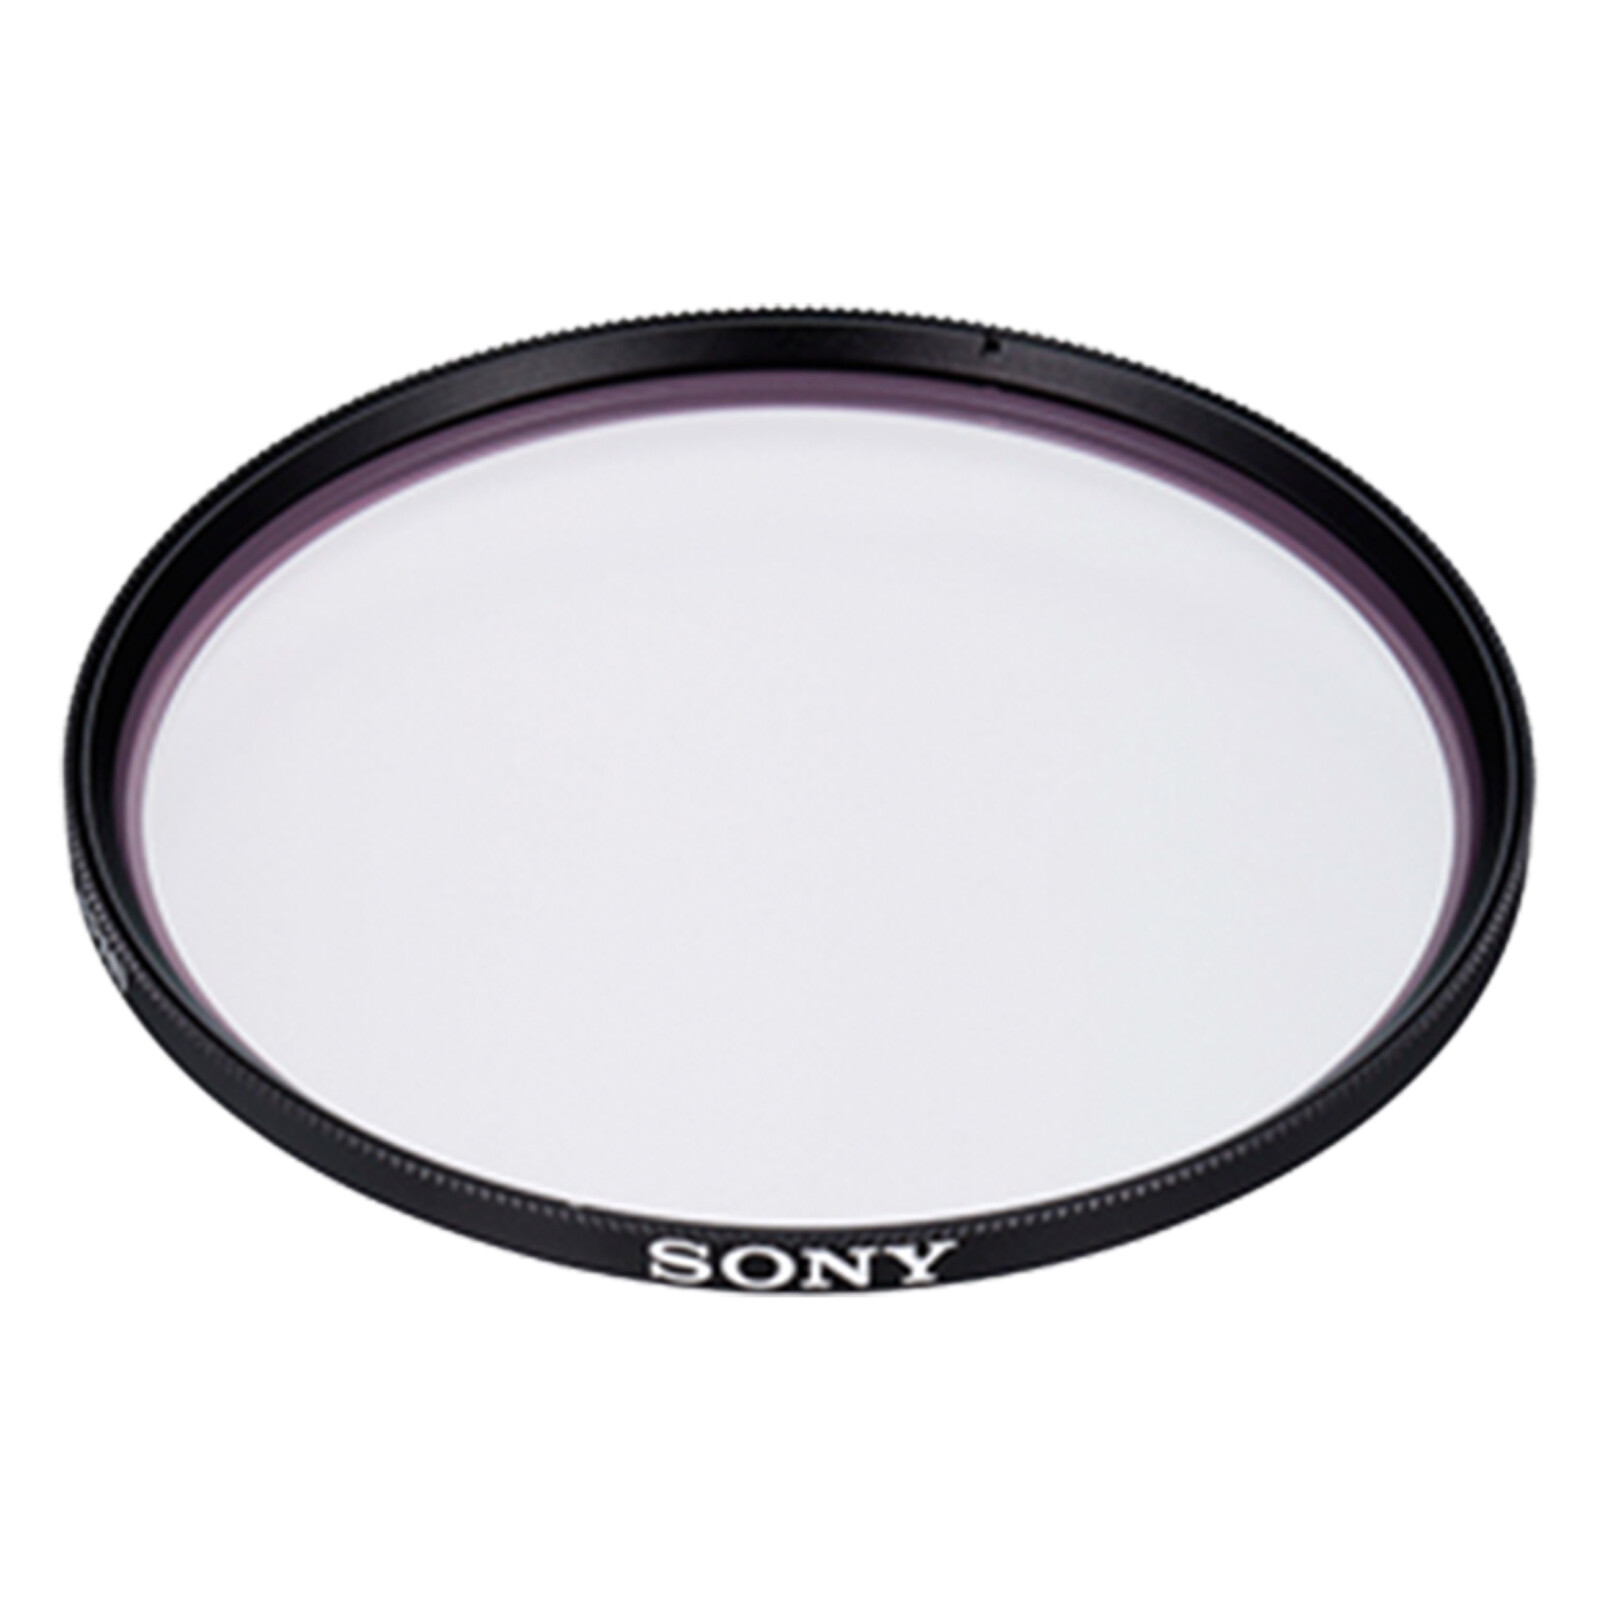 Sony VF-72MPAM Protector 72mm